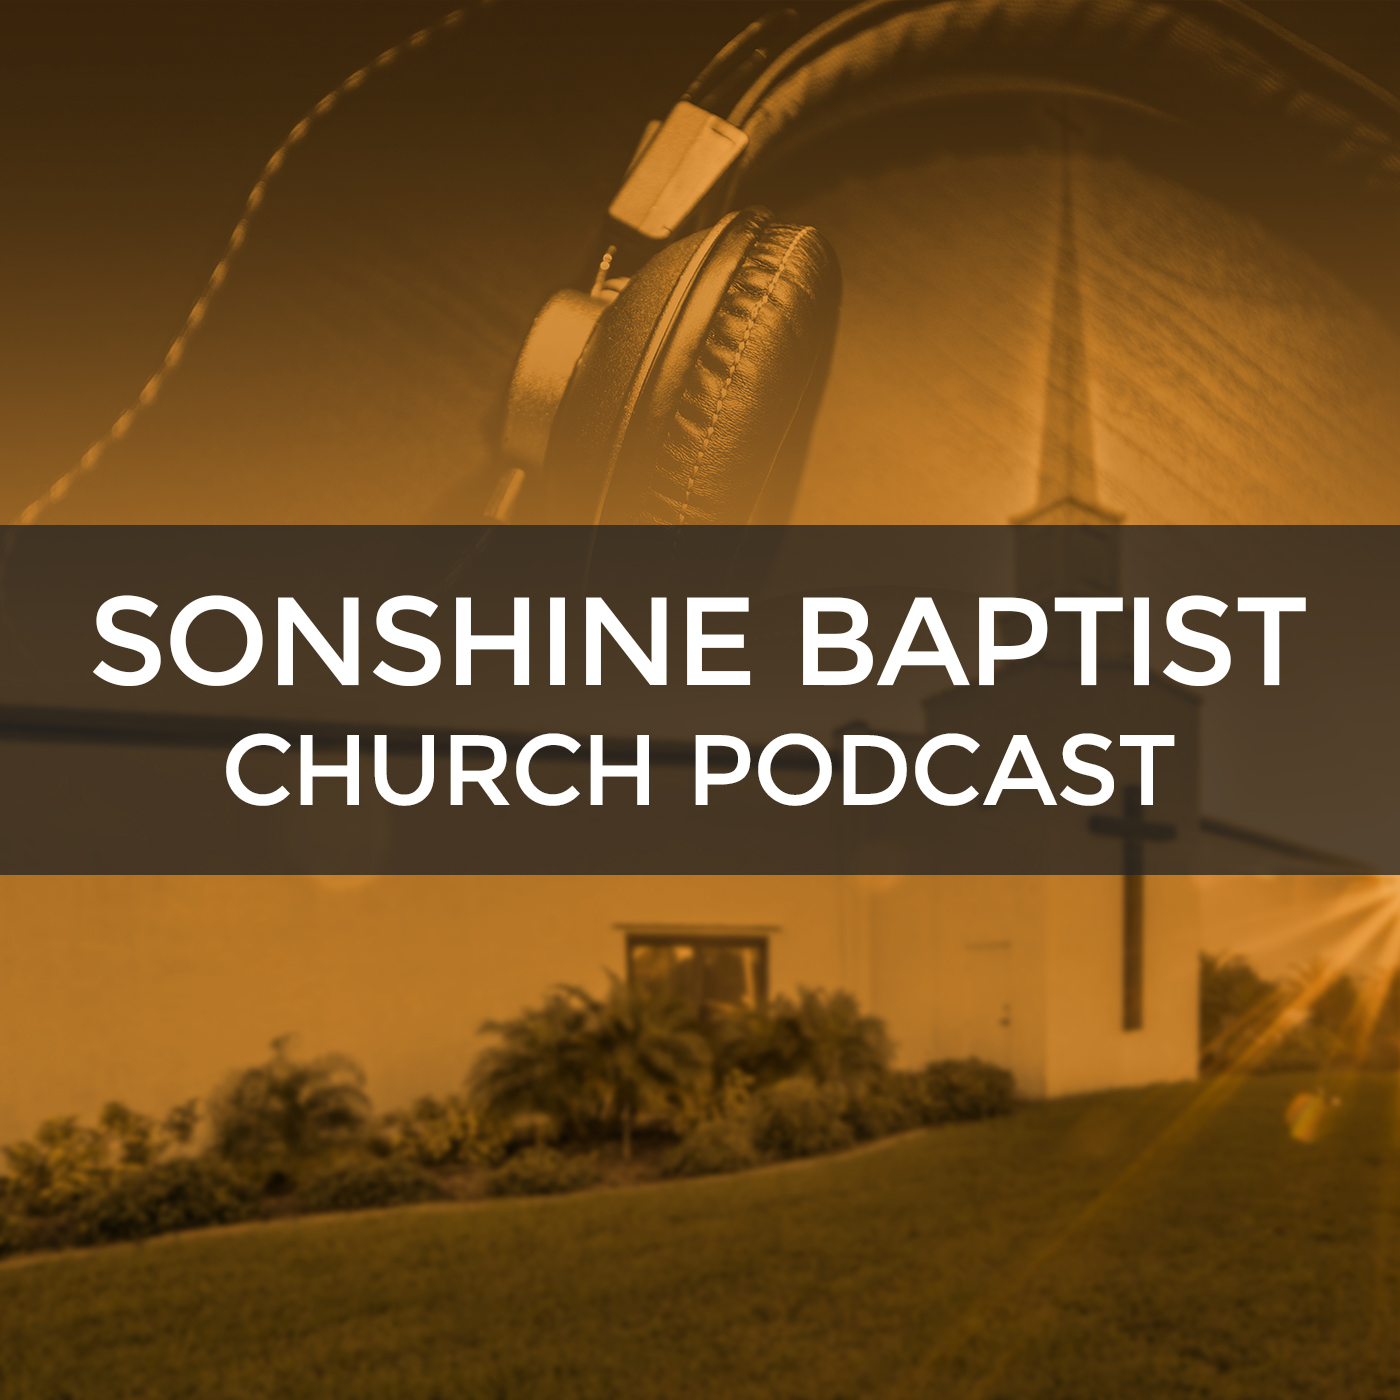 Sonshine Baptist Church Podcast